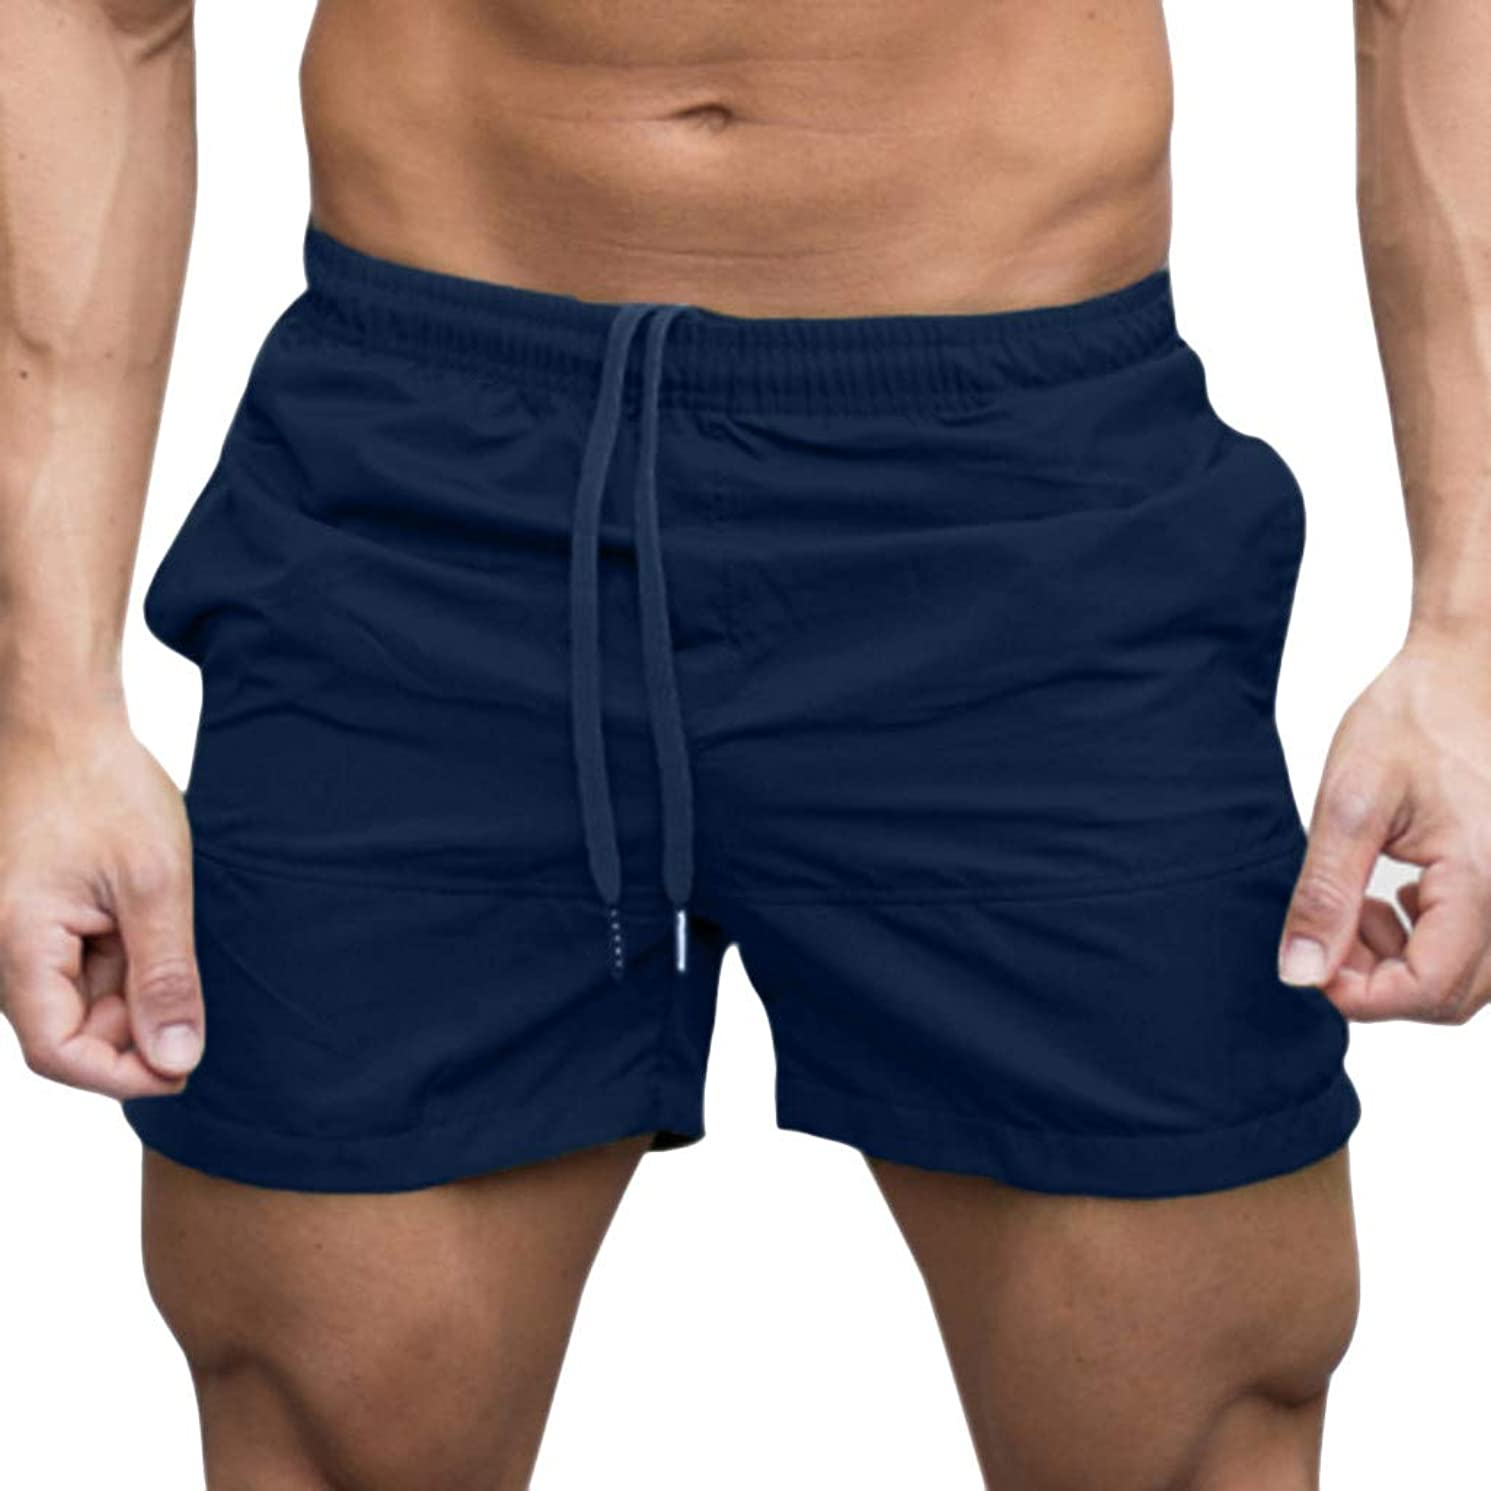 iYYVV Men Casual Sports Jogging Elasticated Waist Shorts Pants Trousers